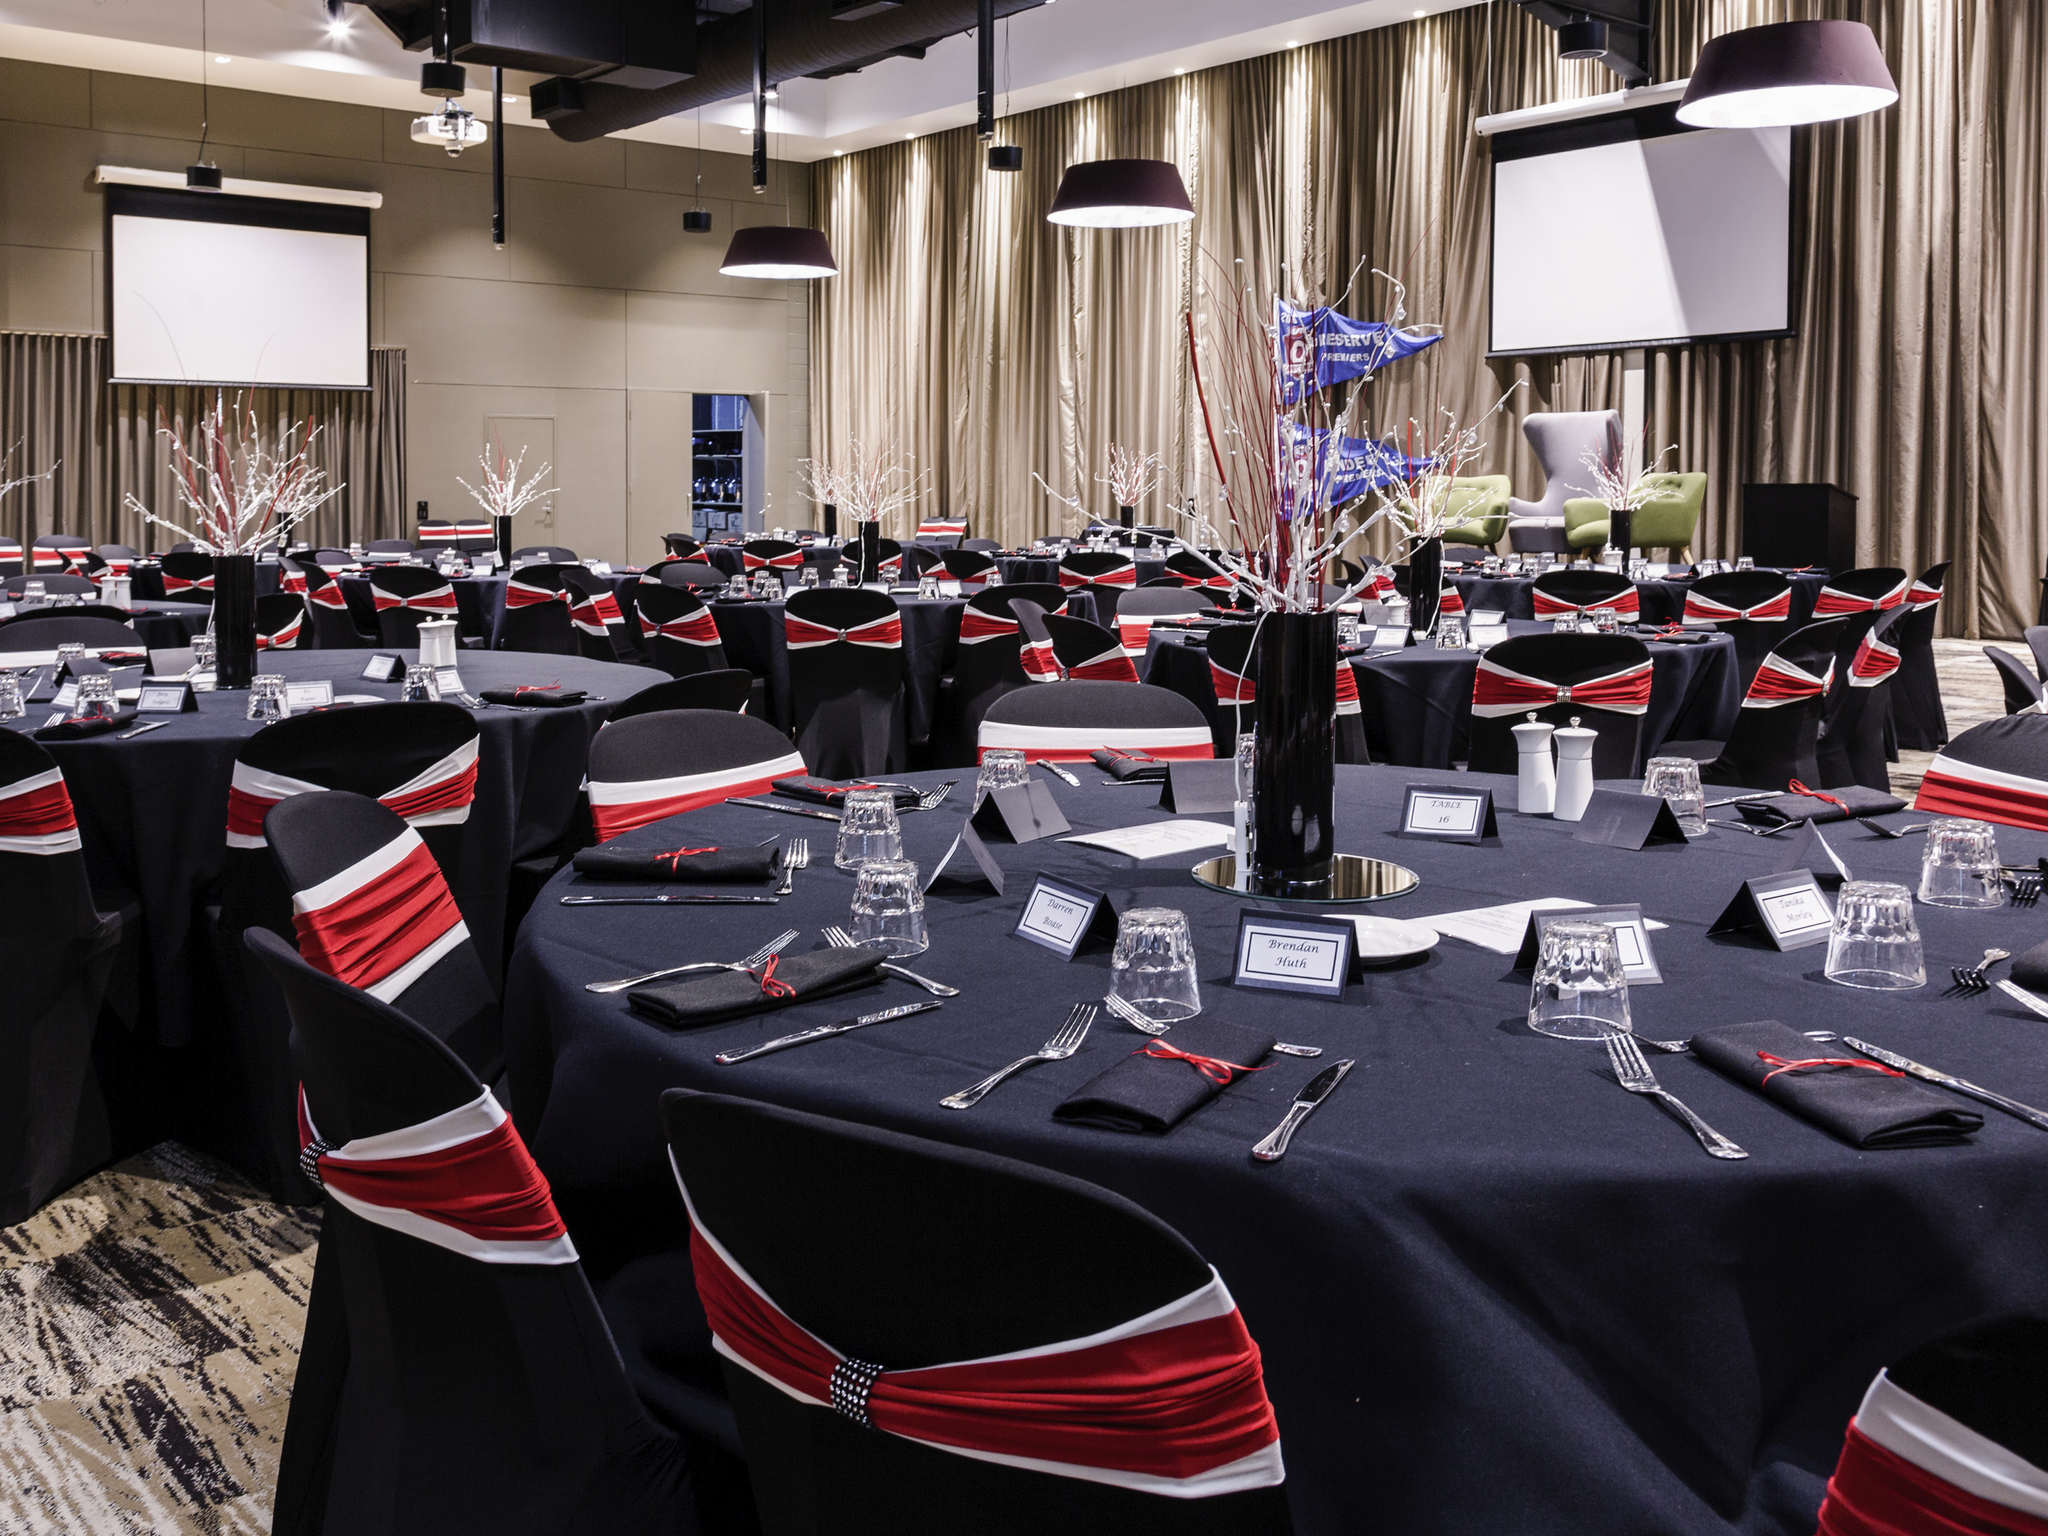 chair covers gladstone swivel cushions mercure accorhotels meetings and events